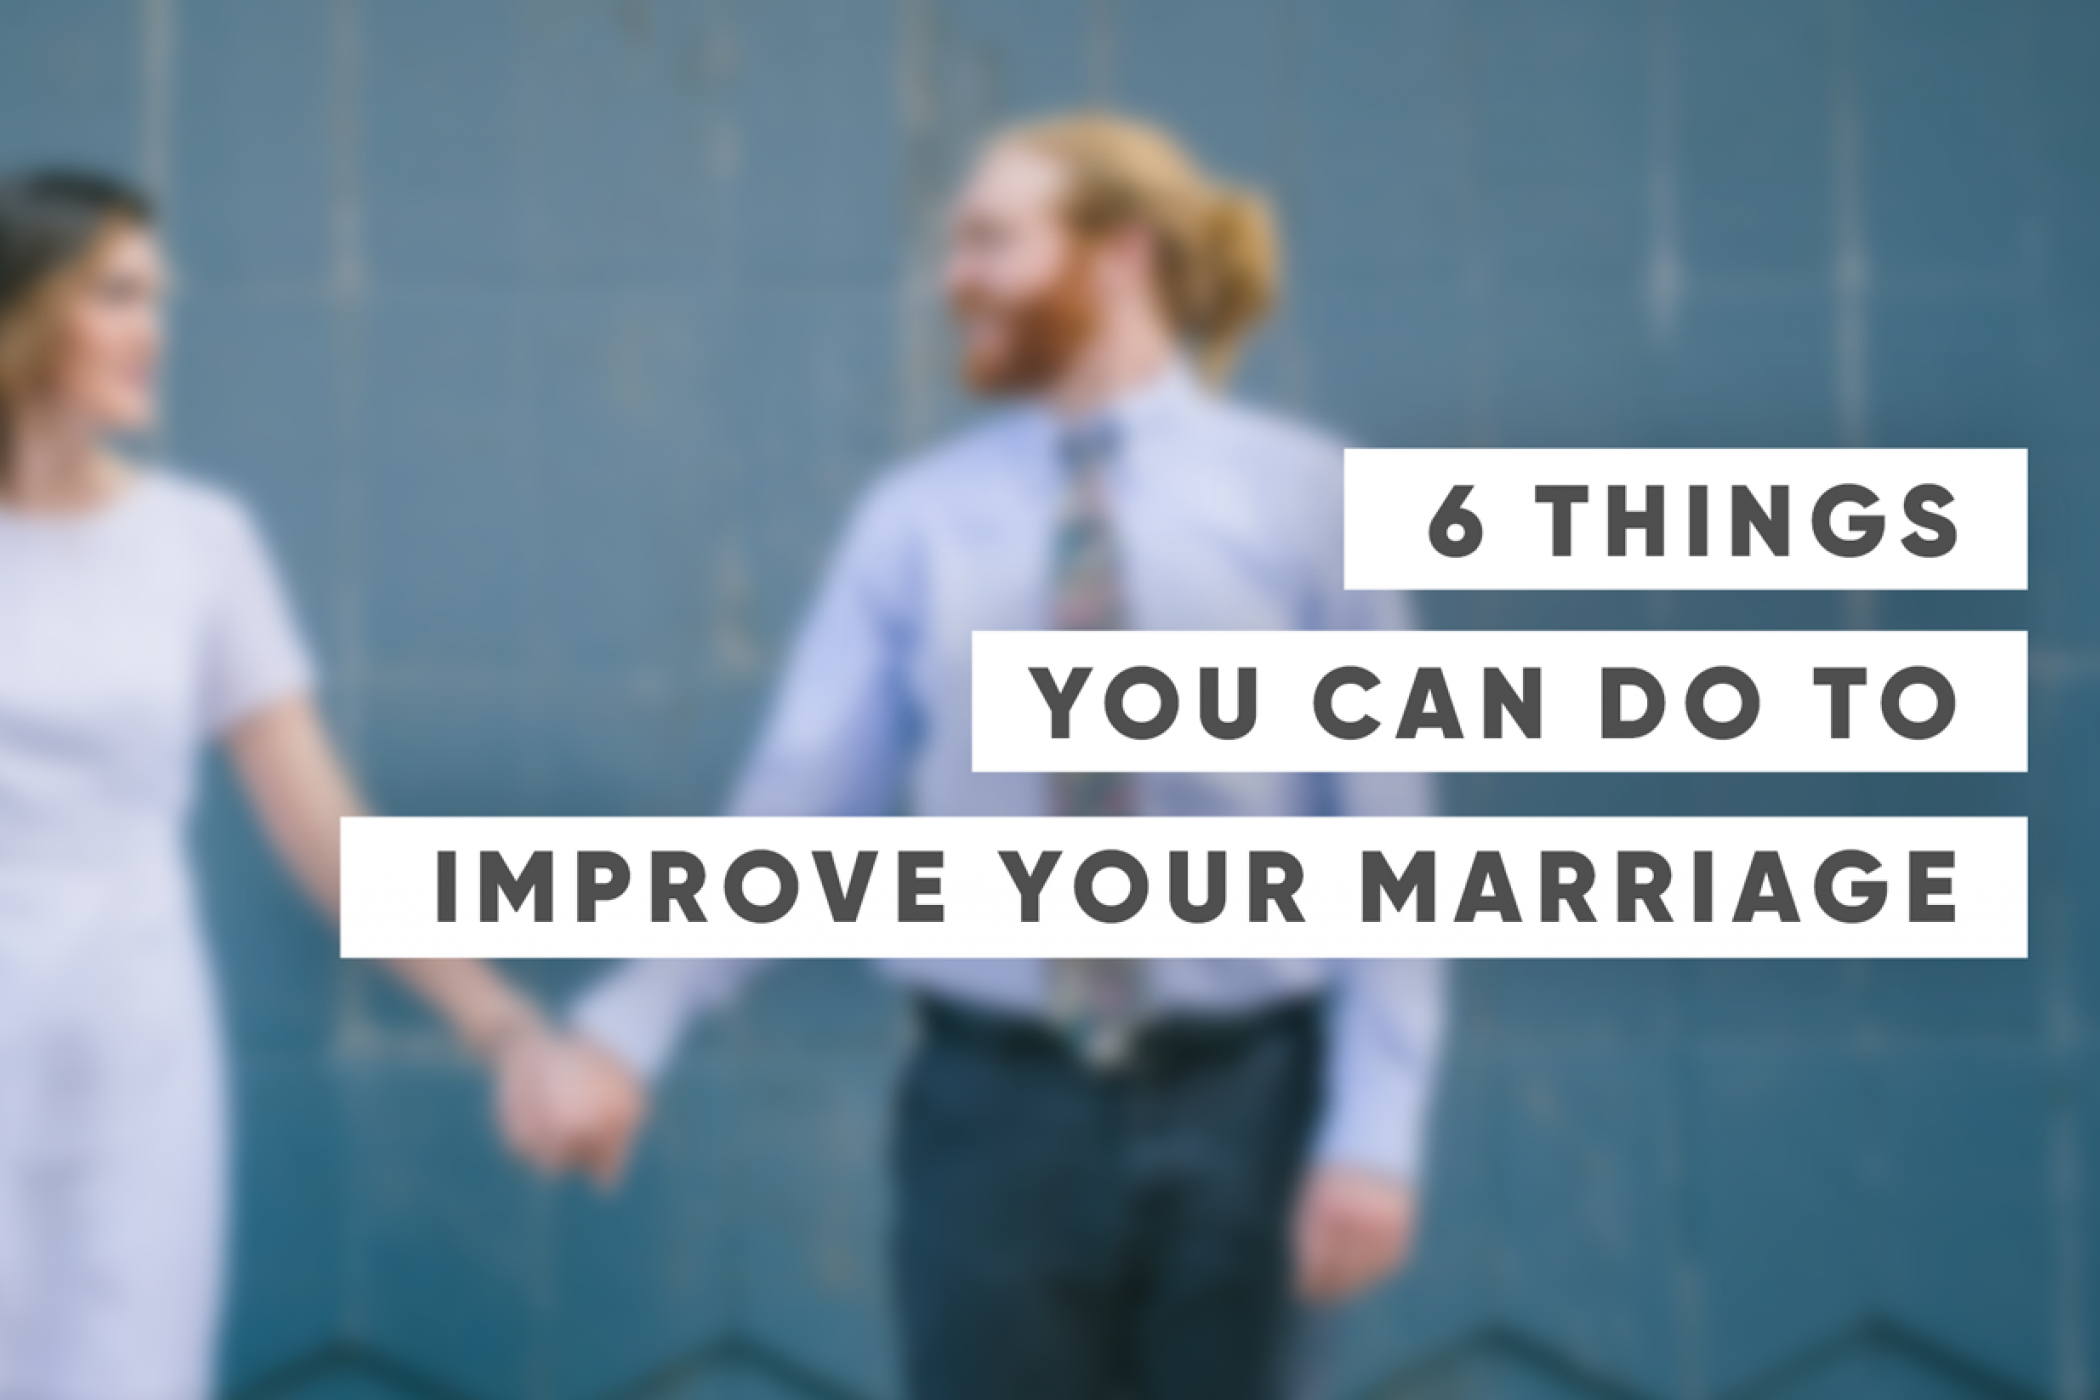 6 Things You Can Do To Improve Your Marriage